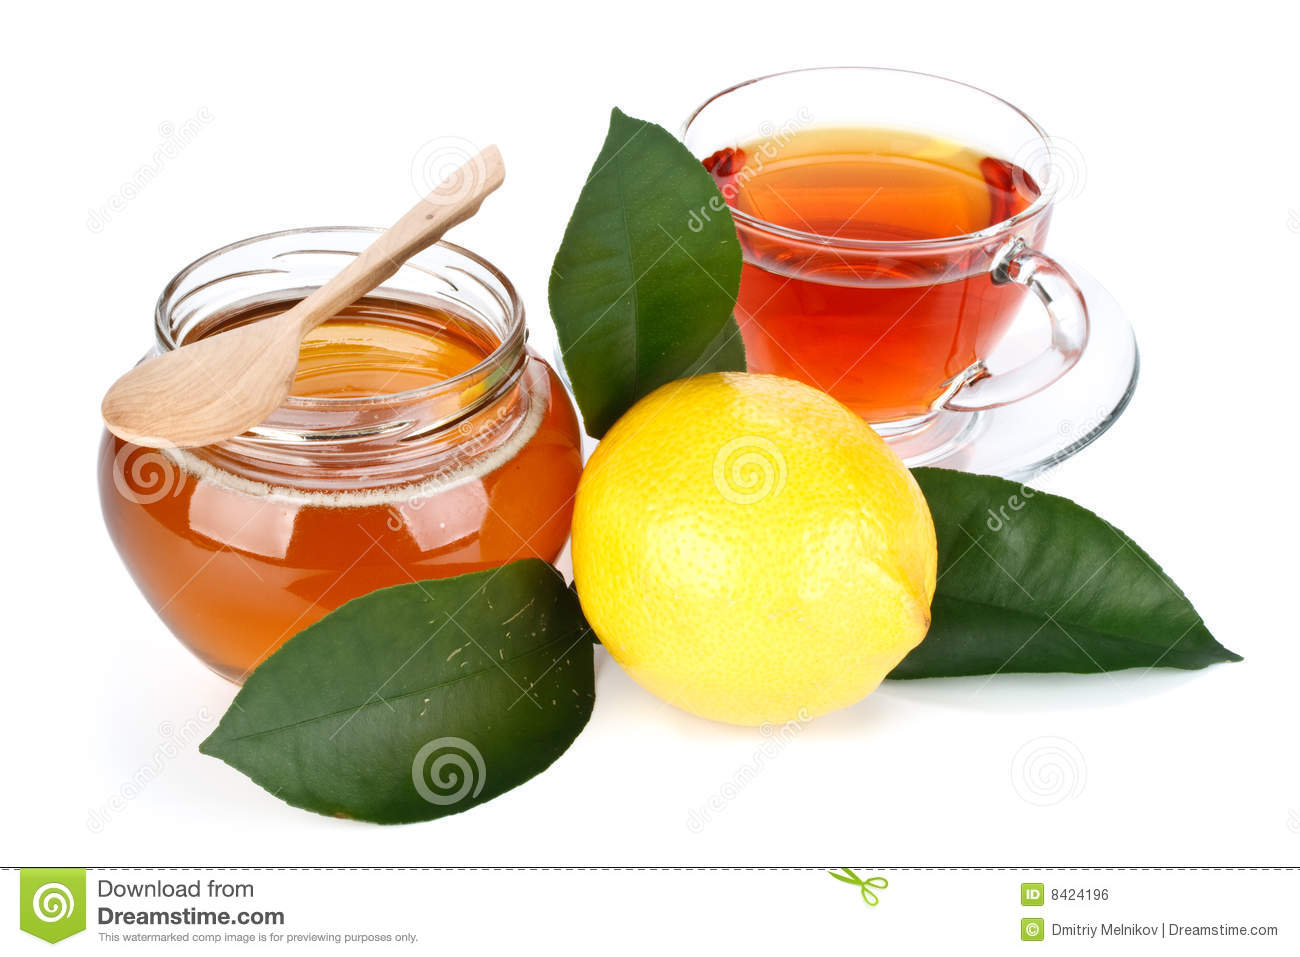 how to make honey and lemon green tea